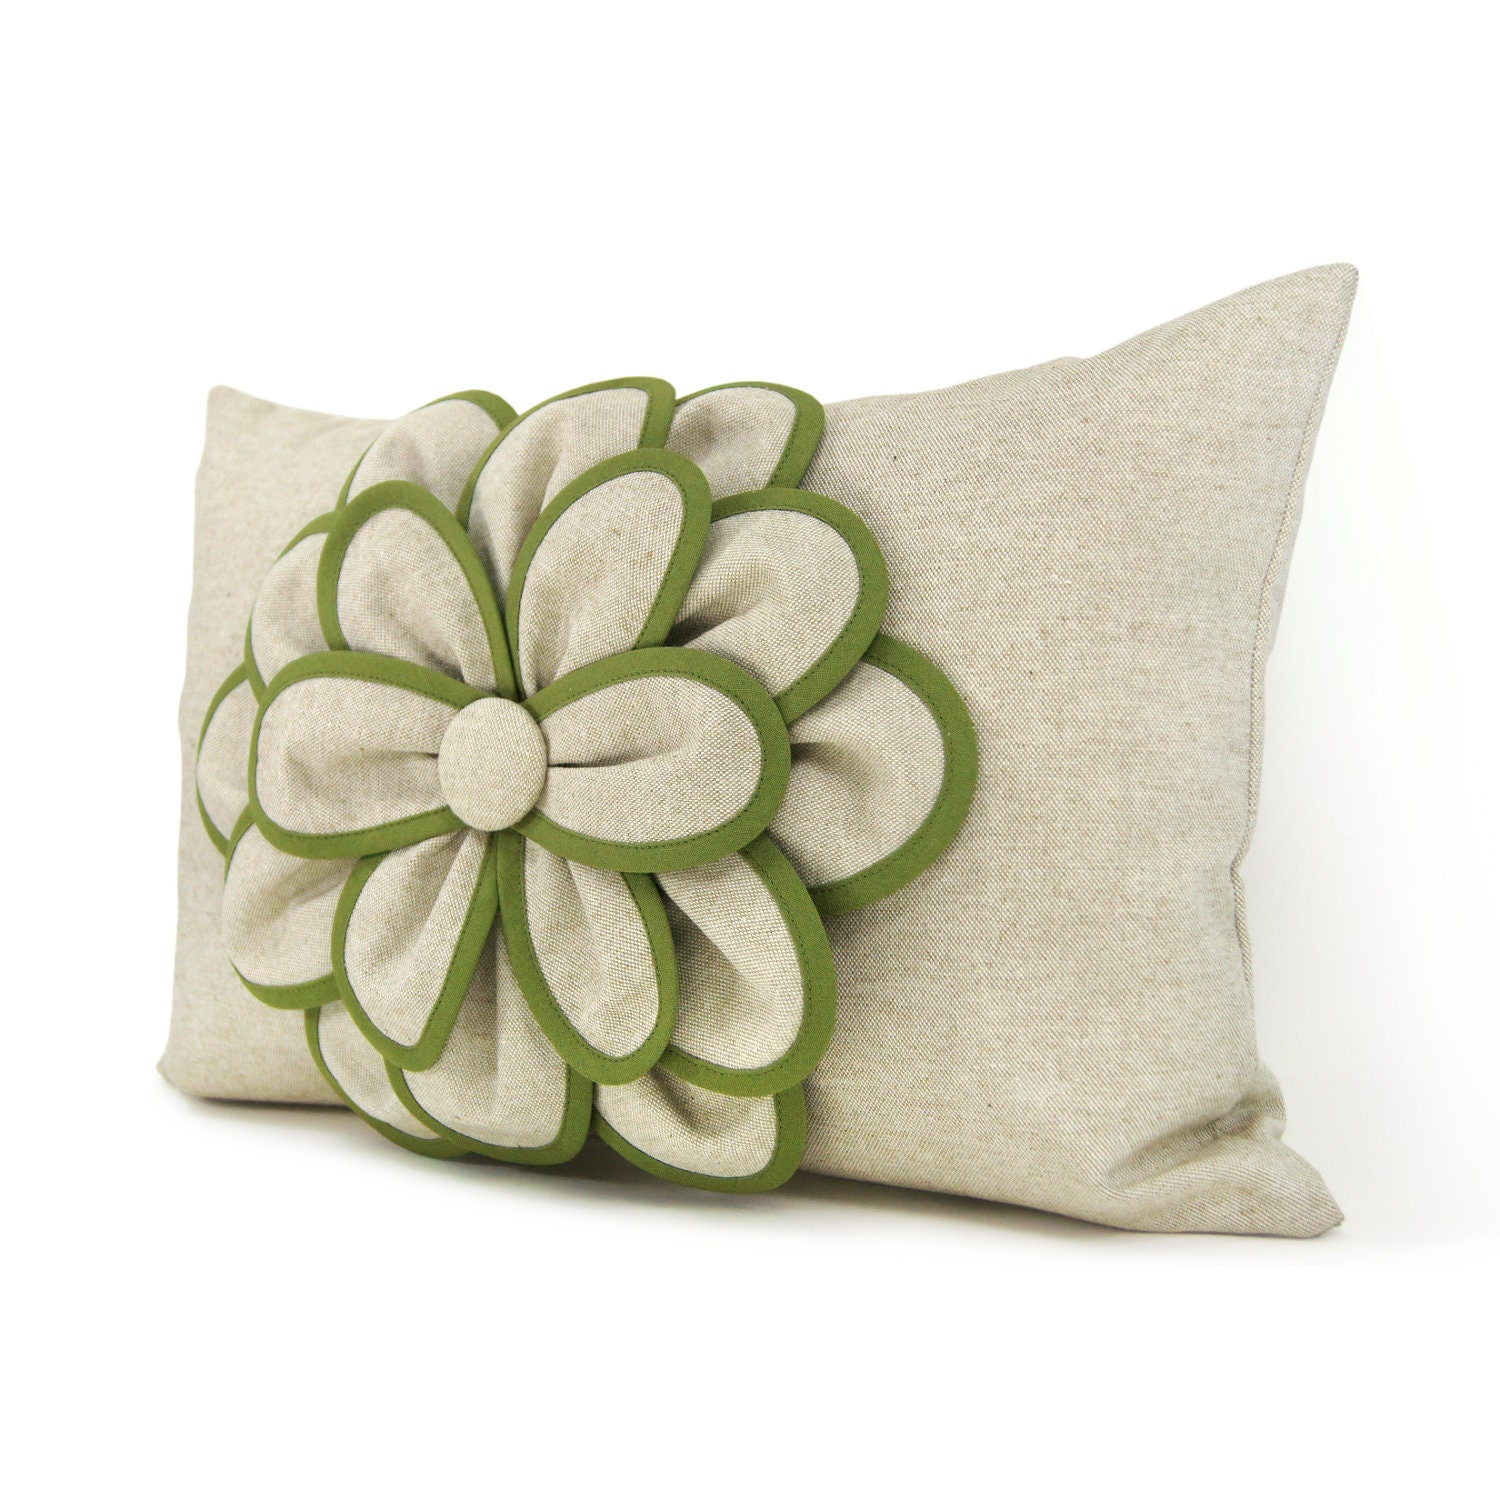 Decorative Pillow Cover 12x18 : Decorative pillow cover 12x18 Shabby chic pillow French